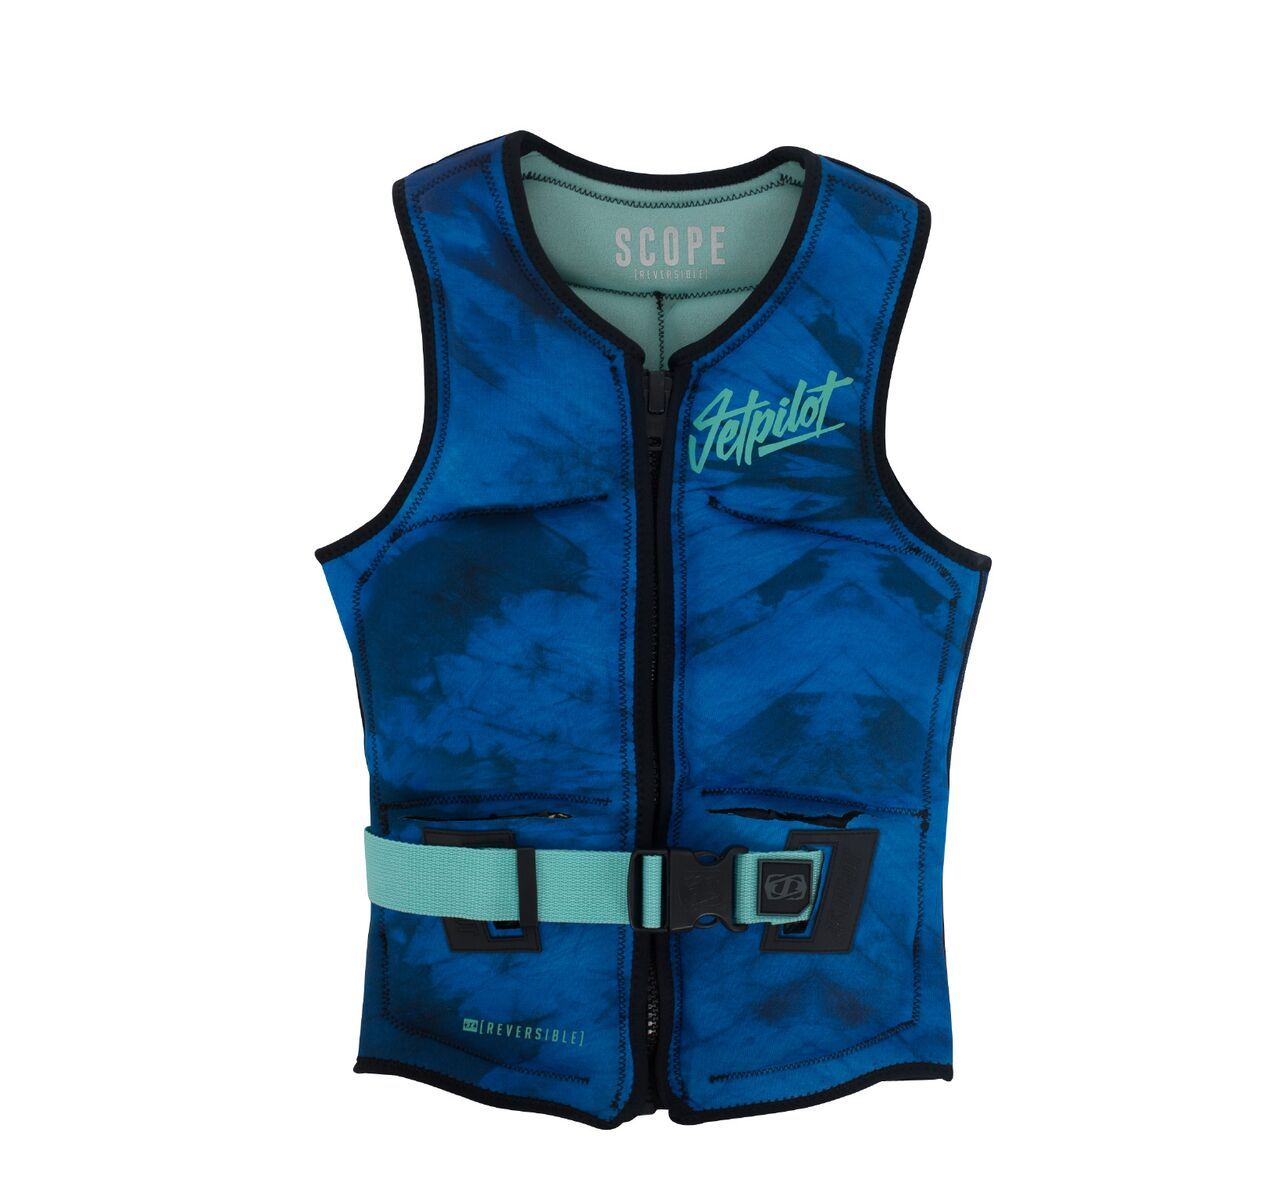 Jet Pilot Scope Reversible Ladies' Vest